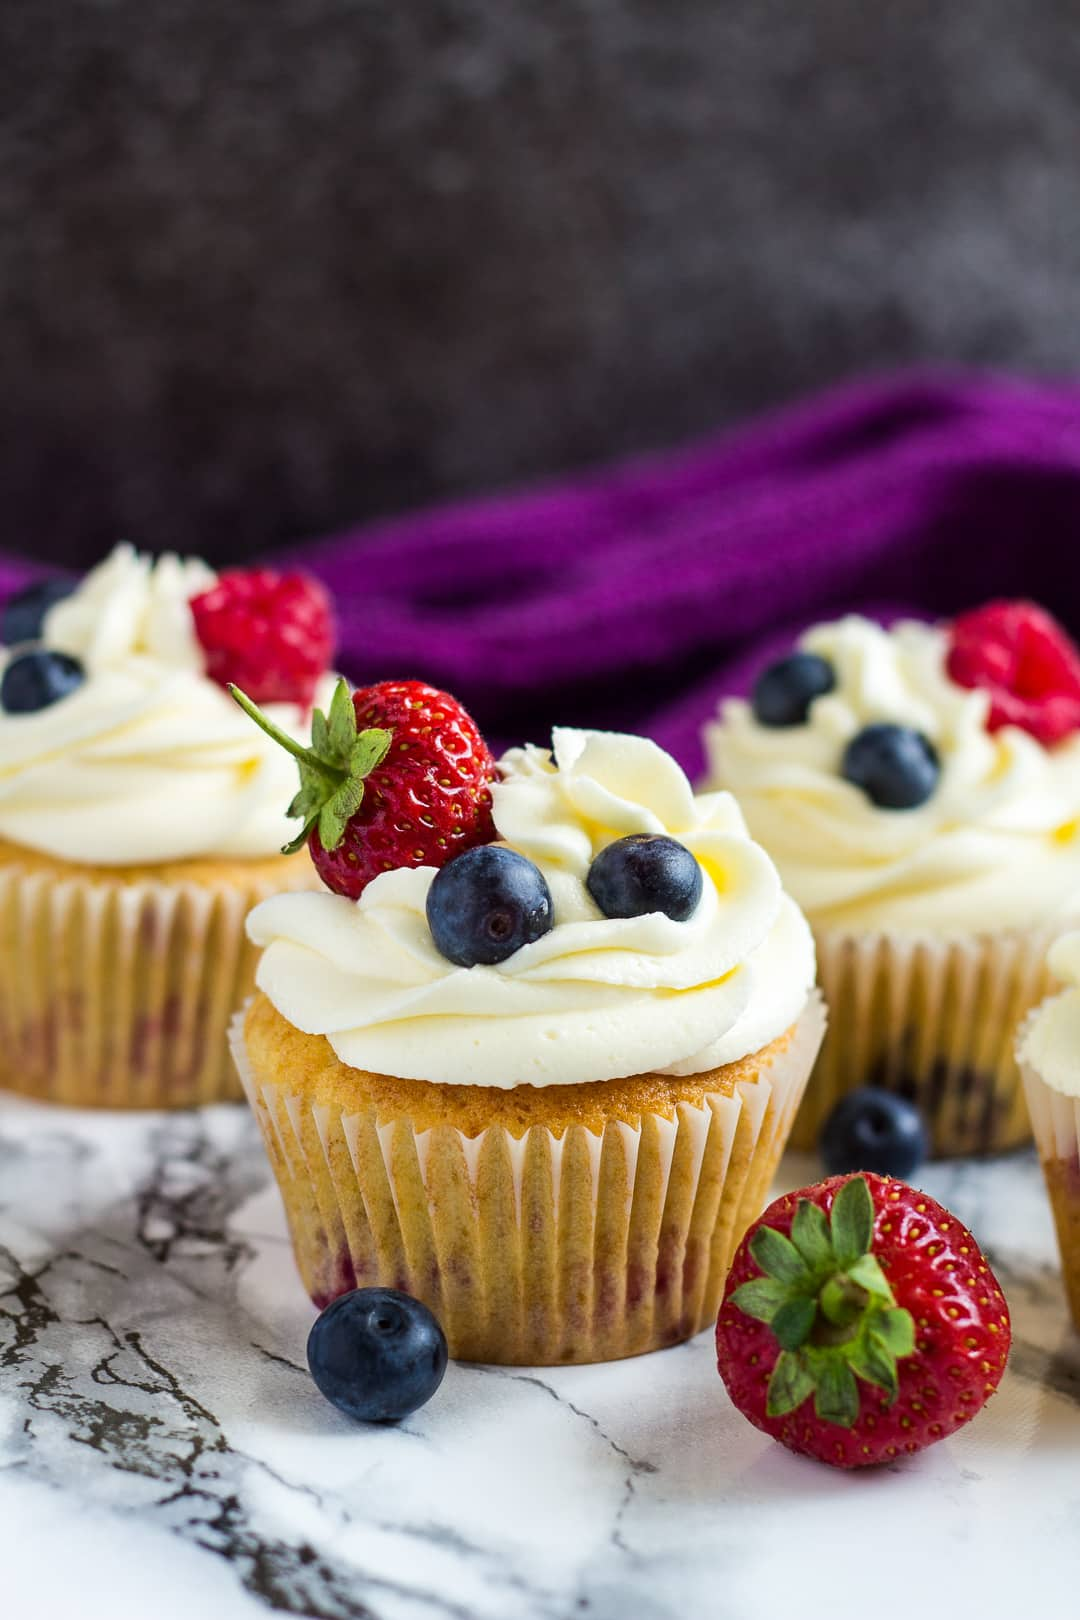 10 Delicious Diy Cupcake Recipes With Various Frosting